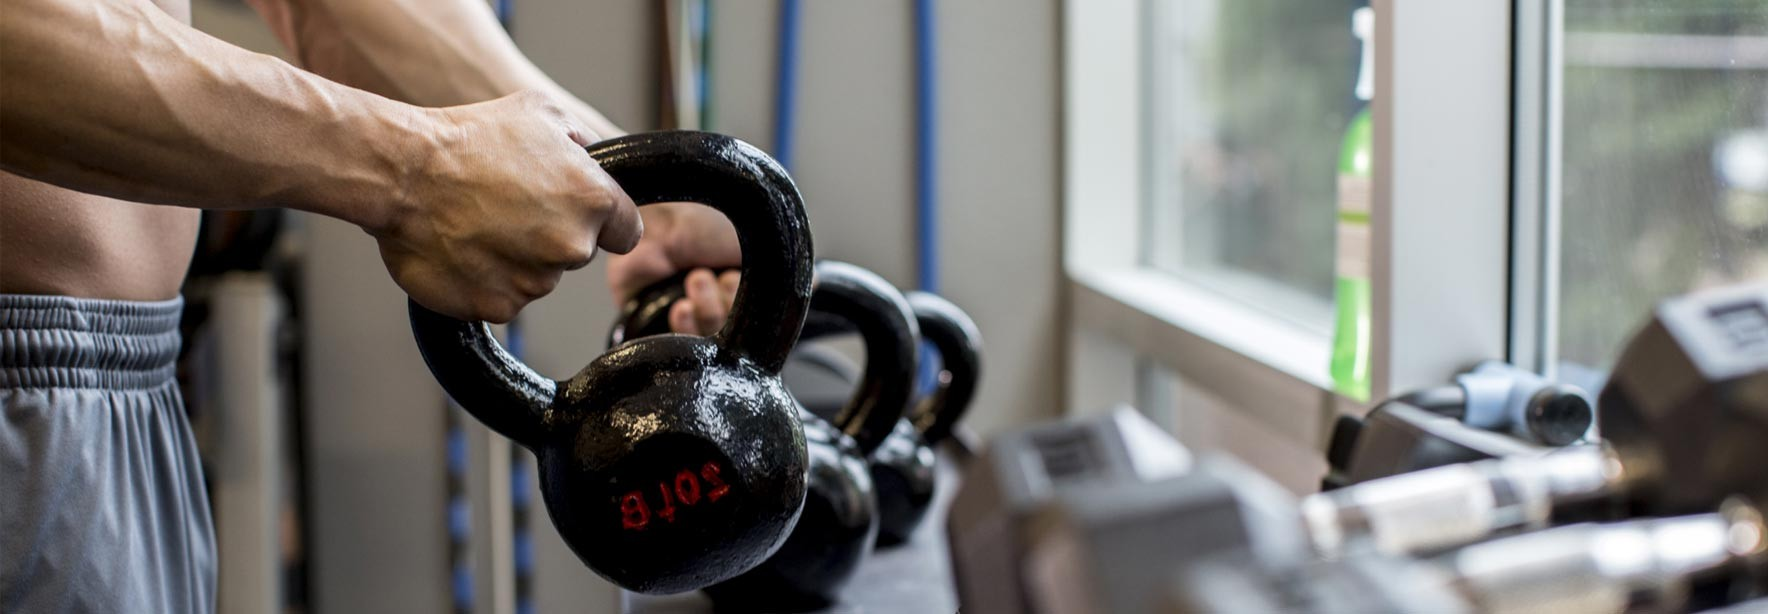 Forum on this topic: 15 Minute Kettlebells Workout, 15-minute-kettlebells-workout/